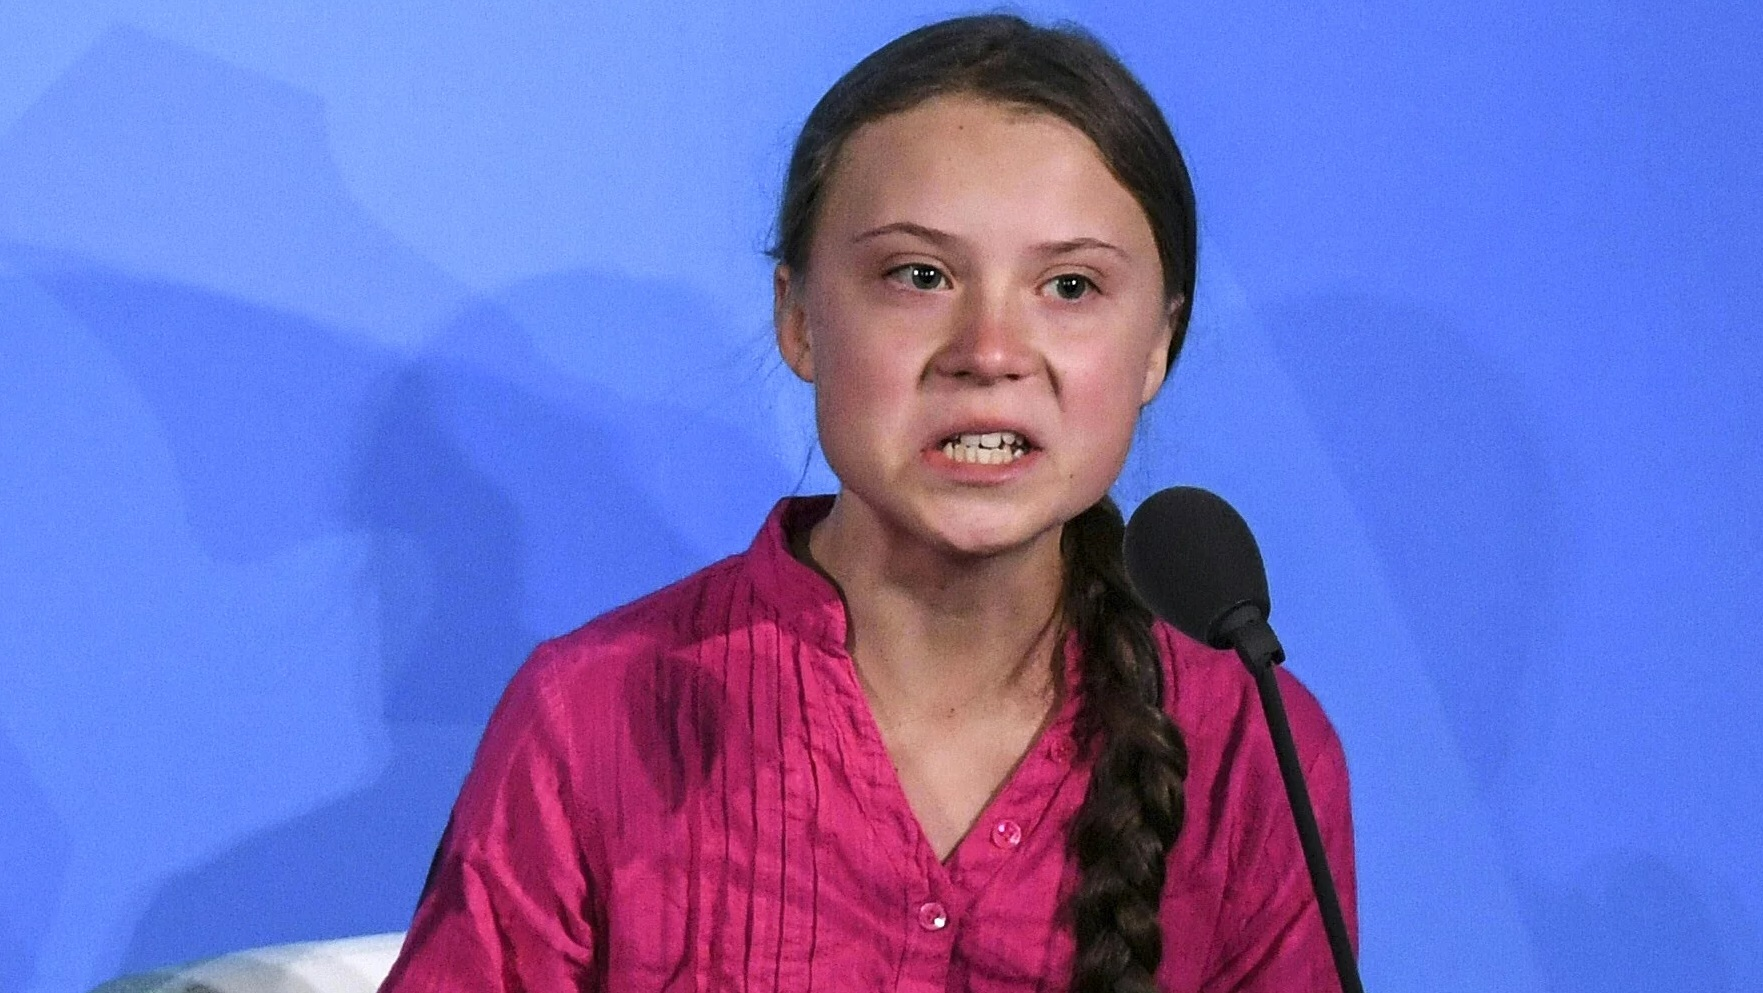 """By demanding that the world submit to her climate lunacy or else be guilty of """"hate,"""" Greta Thunberg is adopting Antifa tactics"""